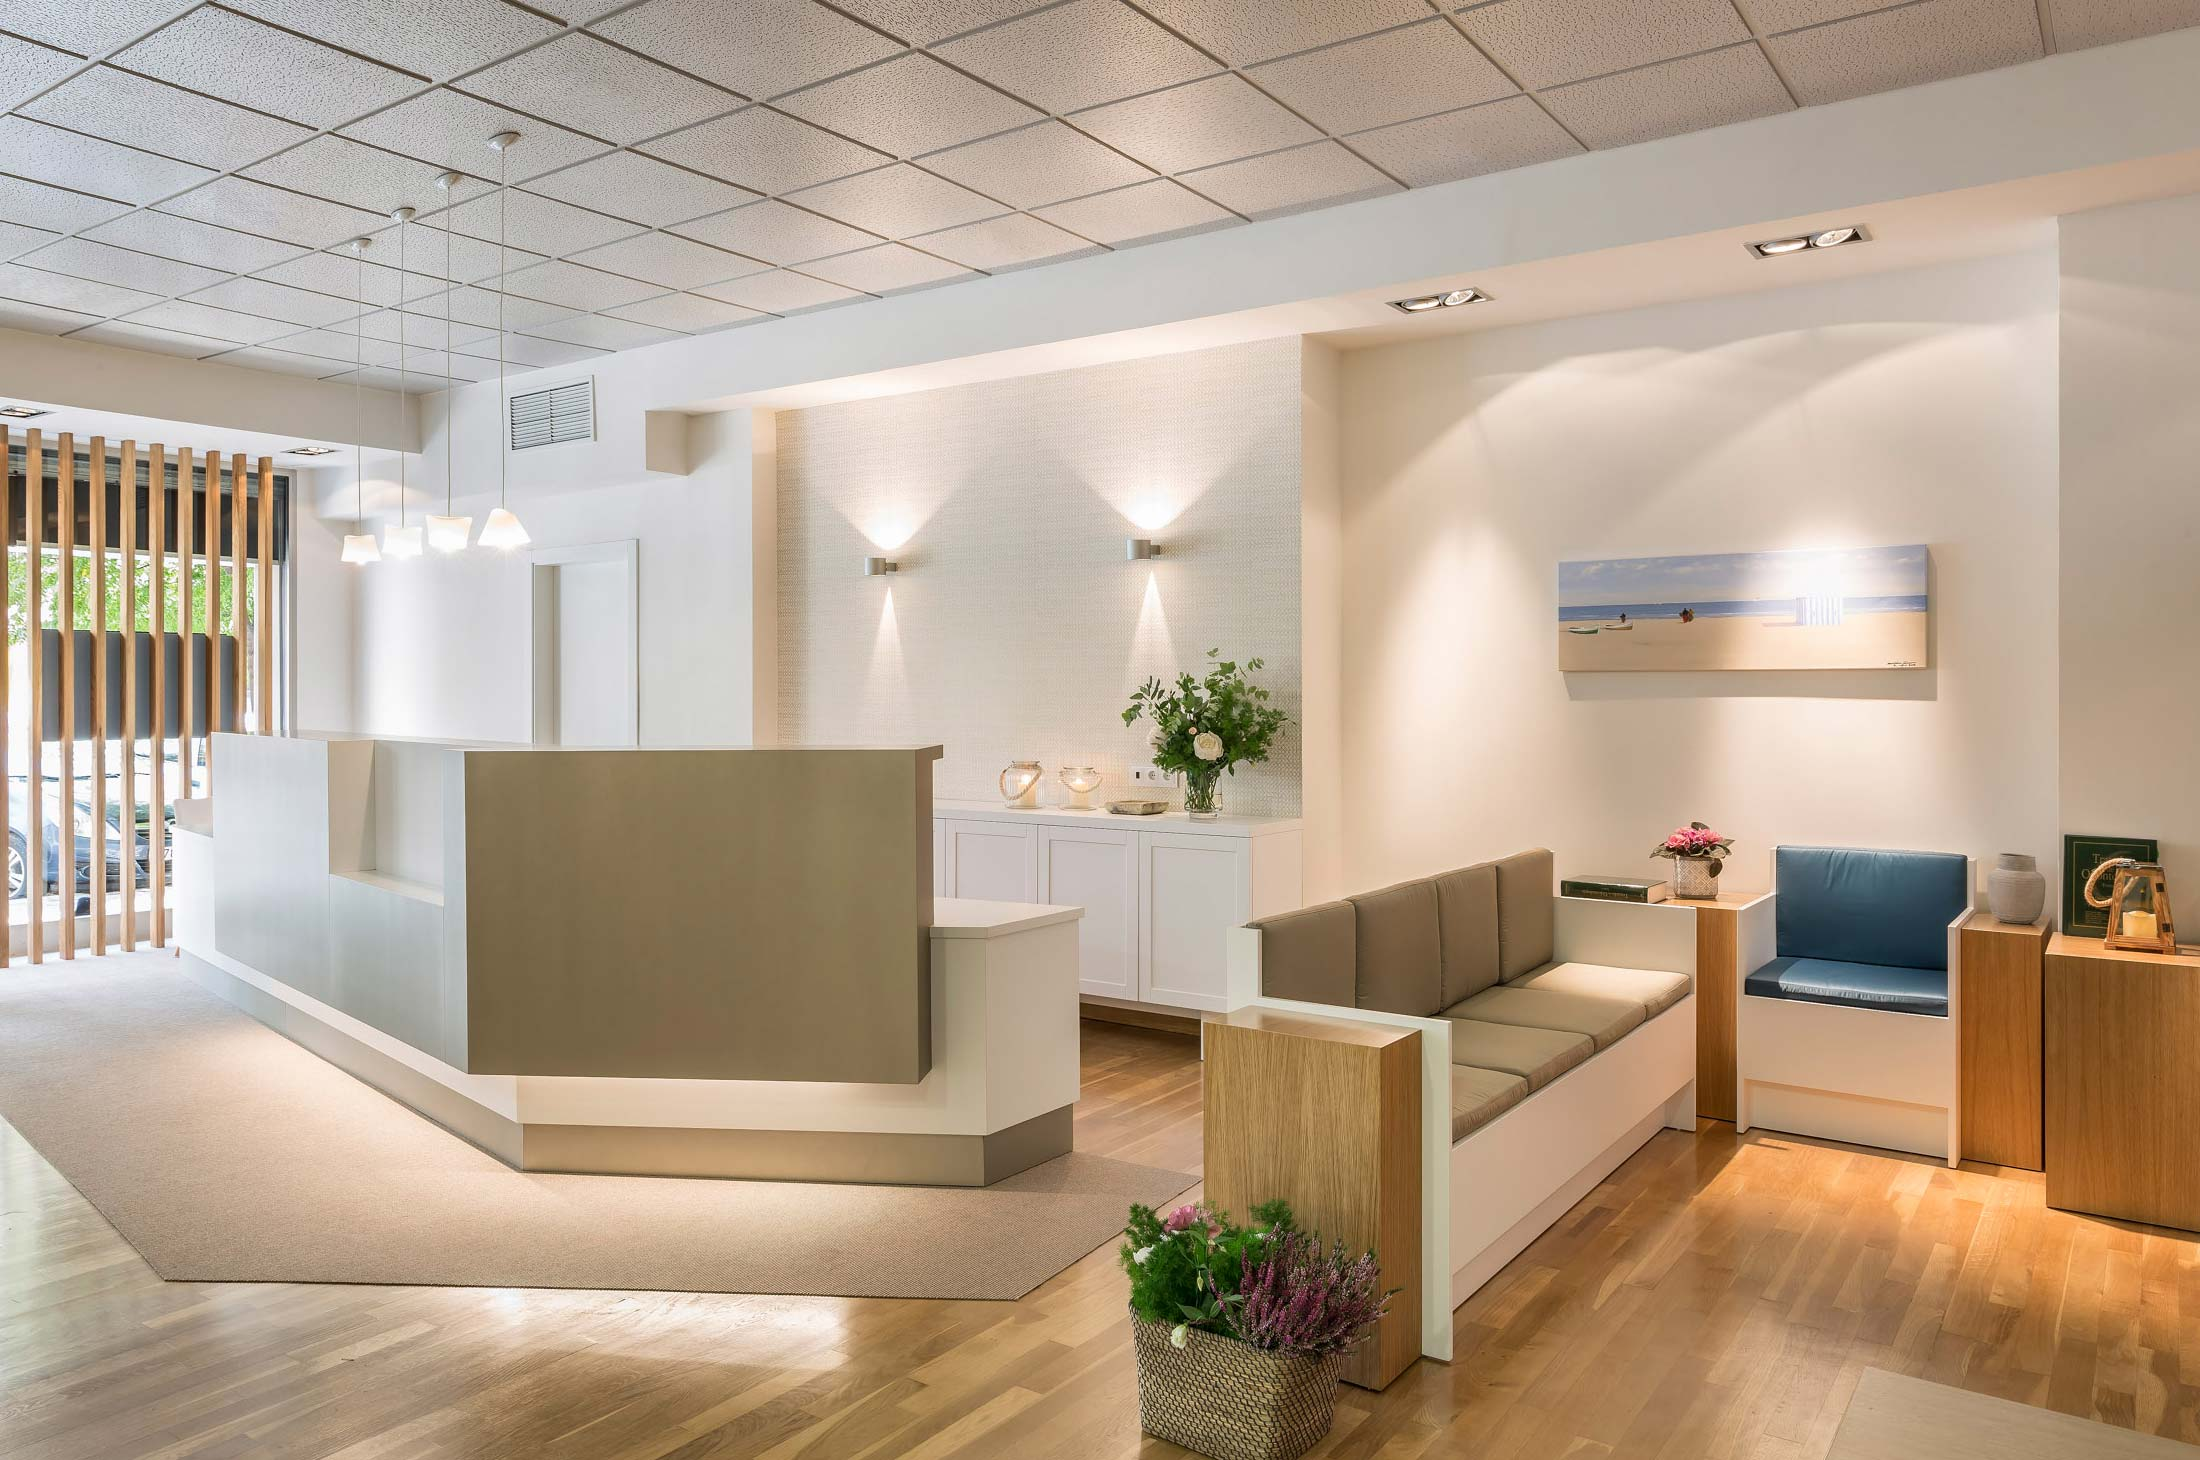 interiorismo clinica dental valencia